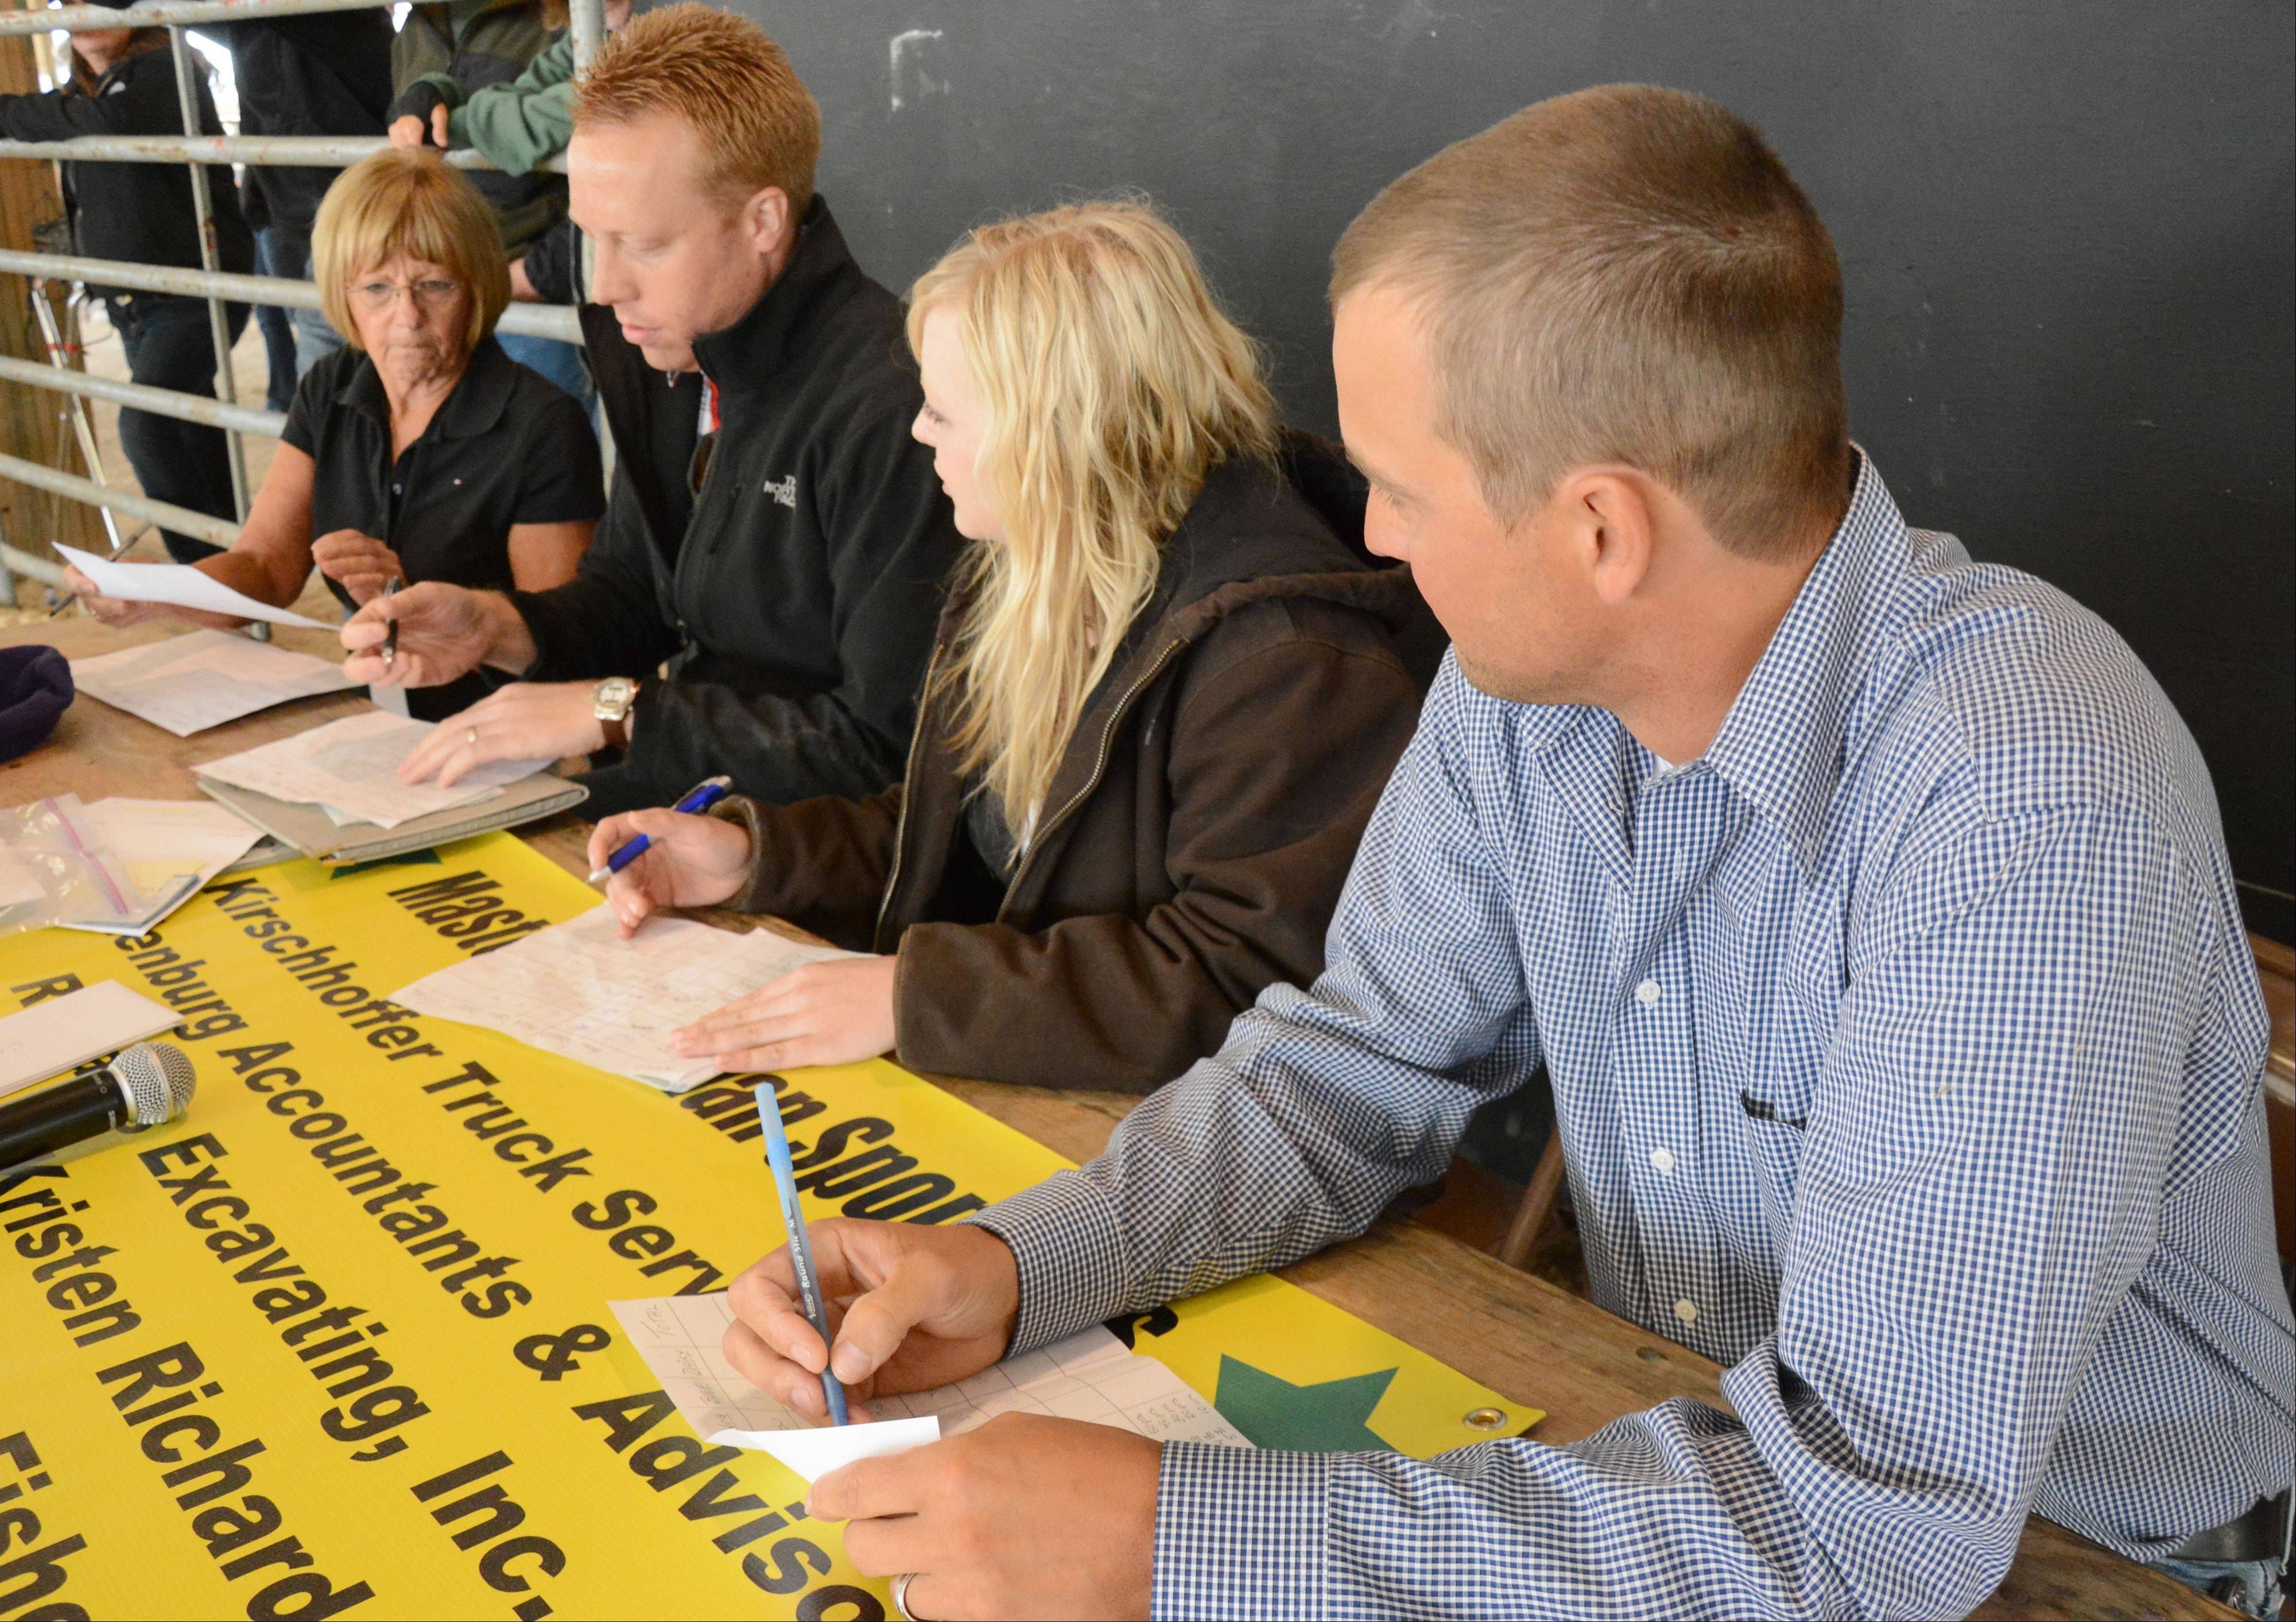 From right to left, judges Mike Richards, of Zion, Haley White, of Wauconda, Rick Doolittle, of Minneapolis, and Connie Davis, of Ingleside, tally the scores for the Master Showman competition Sunday at the Lake County Fair.